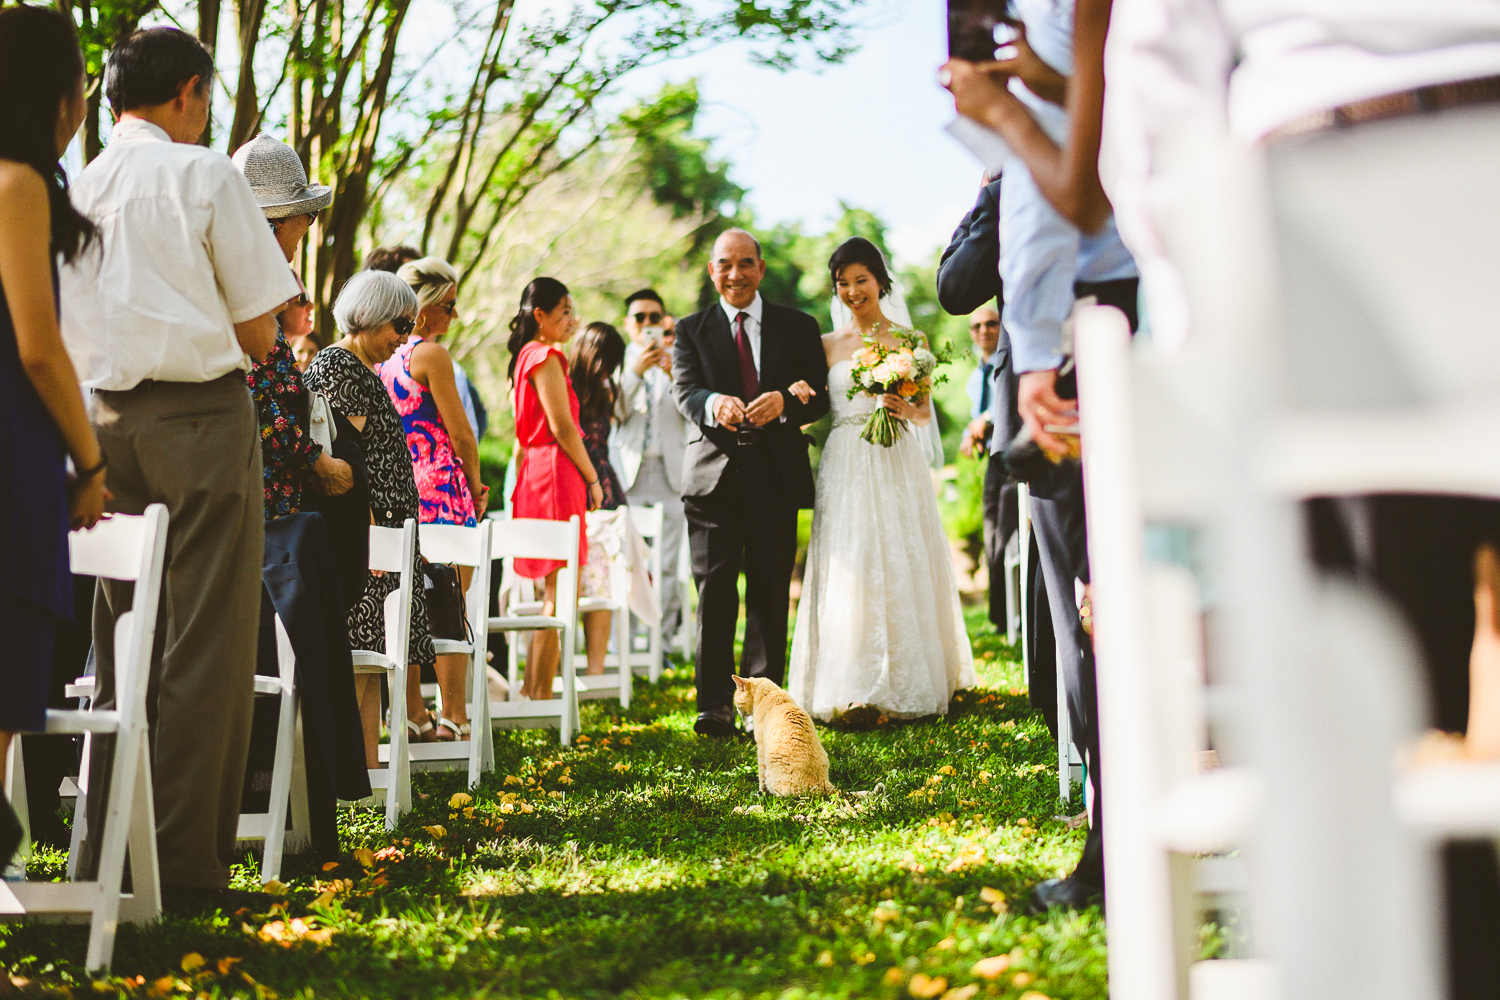 025 - cat in the way of the bride walking down the aisle.jpg